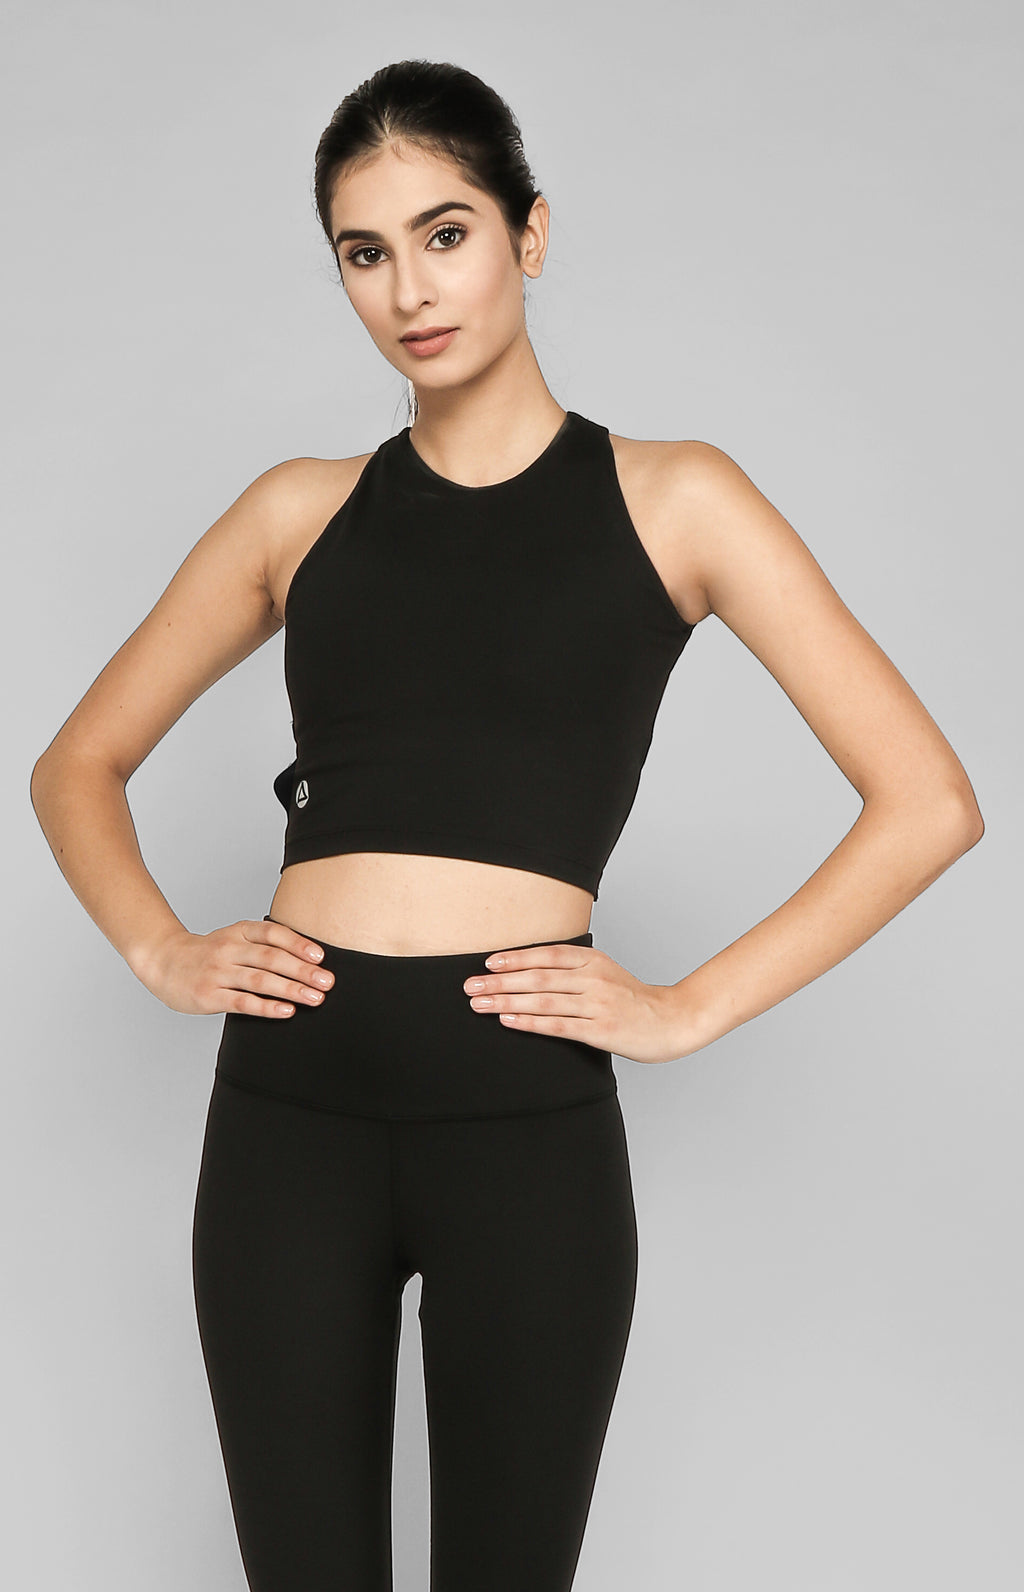 HISOKI CROPPED TOP WITH INNER BRA